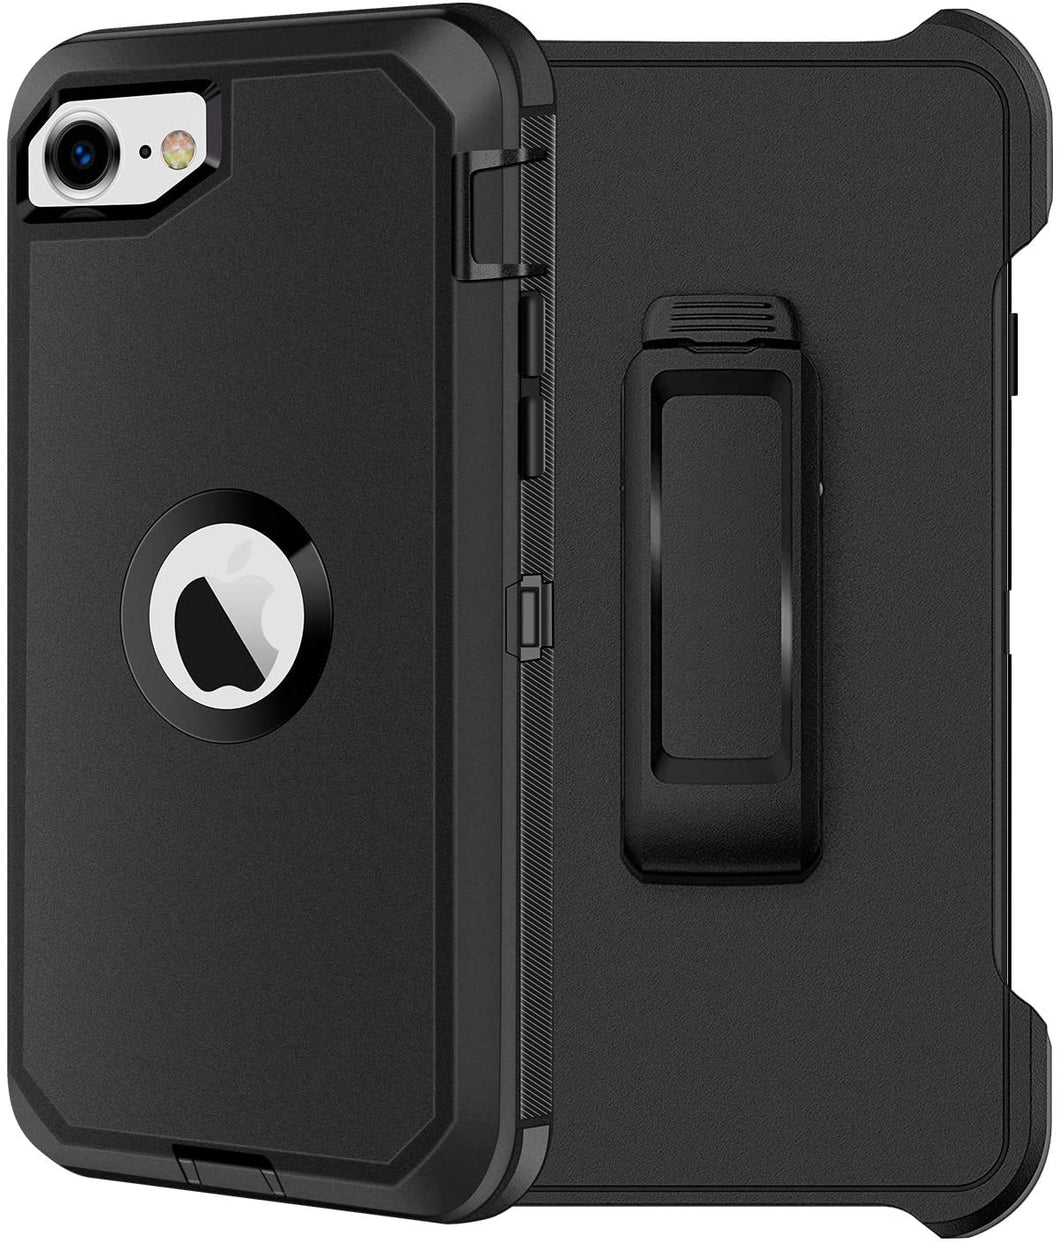 AICase Belt-Clip Holster Drop Protection Full Body Rugged Heavy Duty Case for iPhone SE 2020